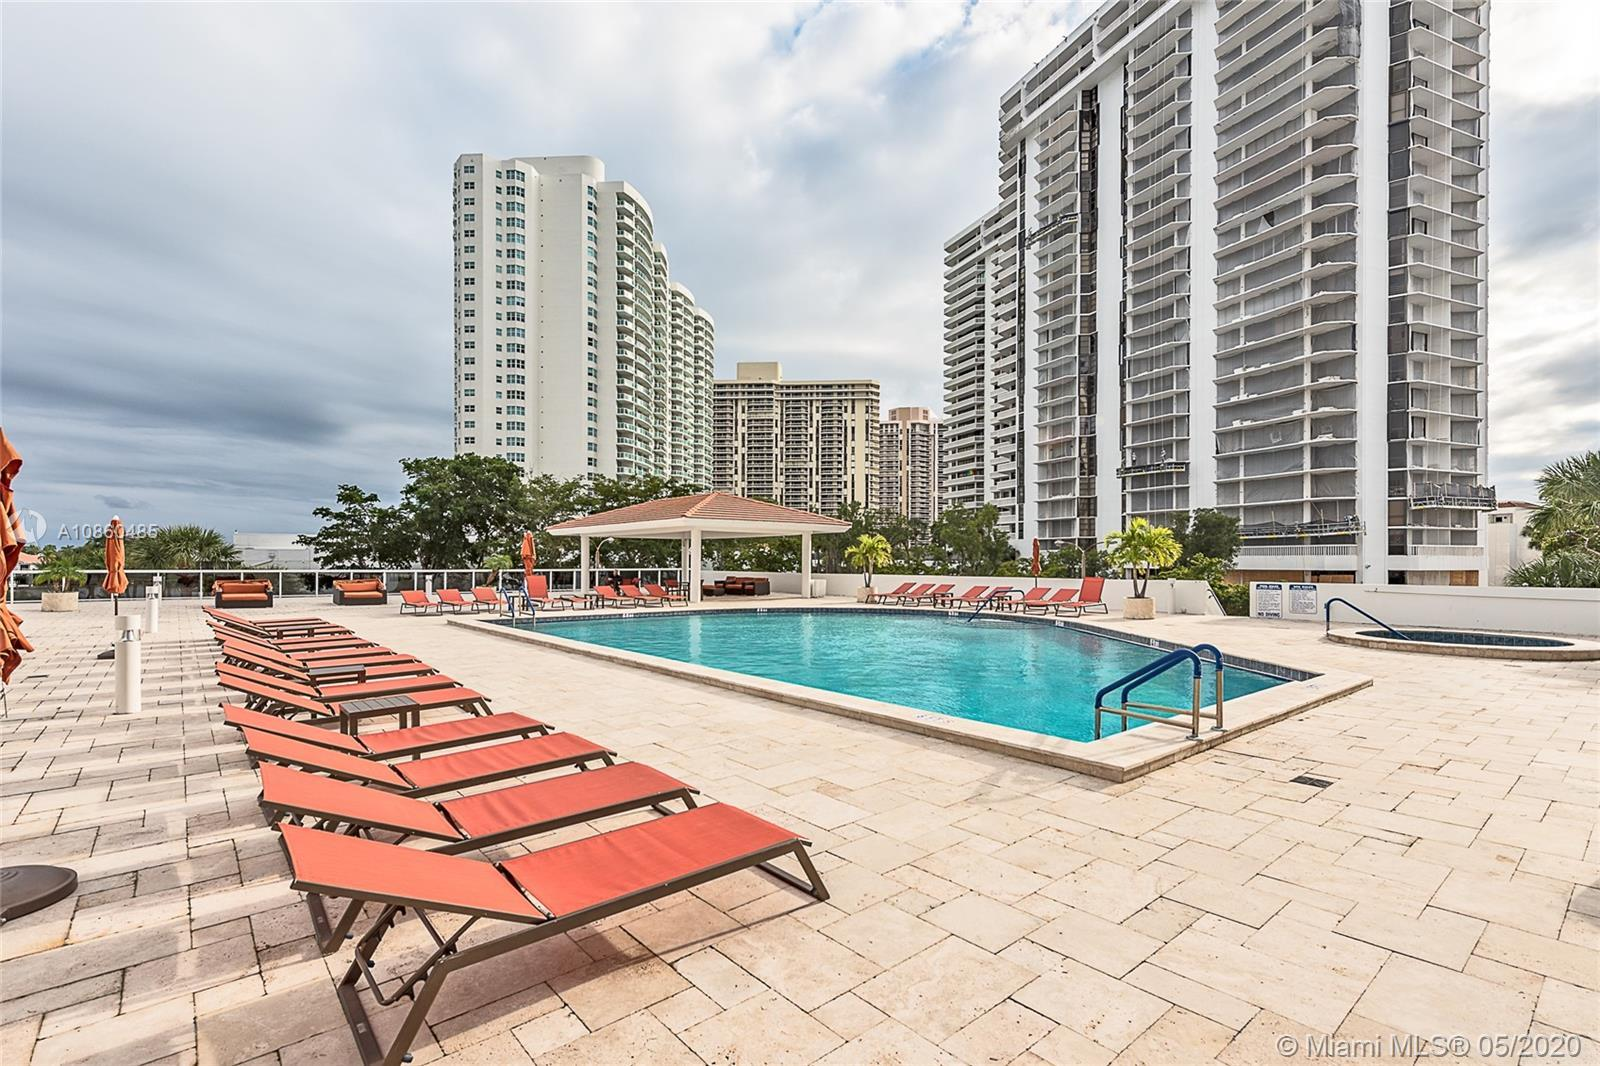 Renovated Waterview Condo in the heart of Aventura across Turnberry Golf Course; 2 Split bedrooms, 2